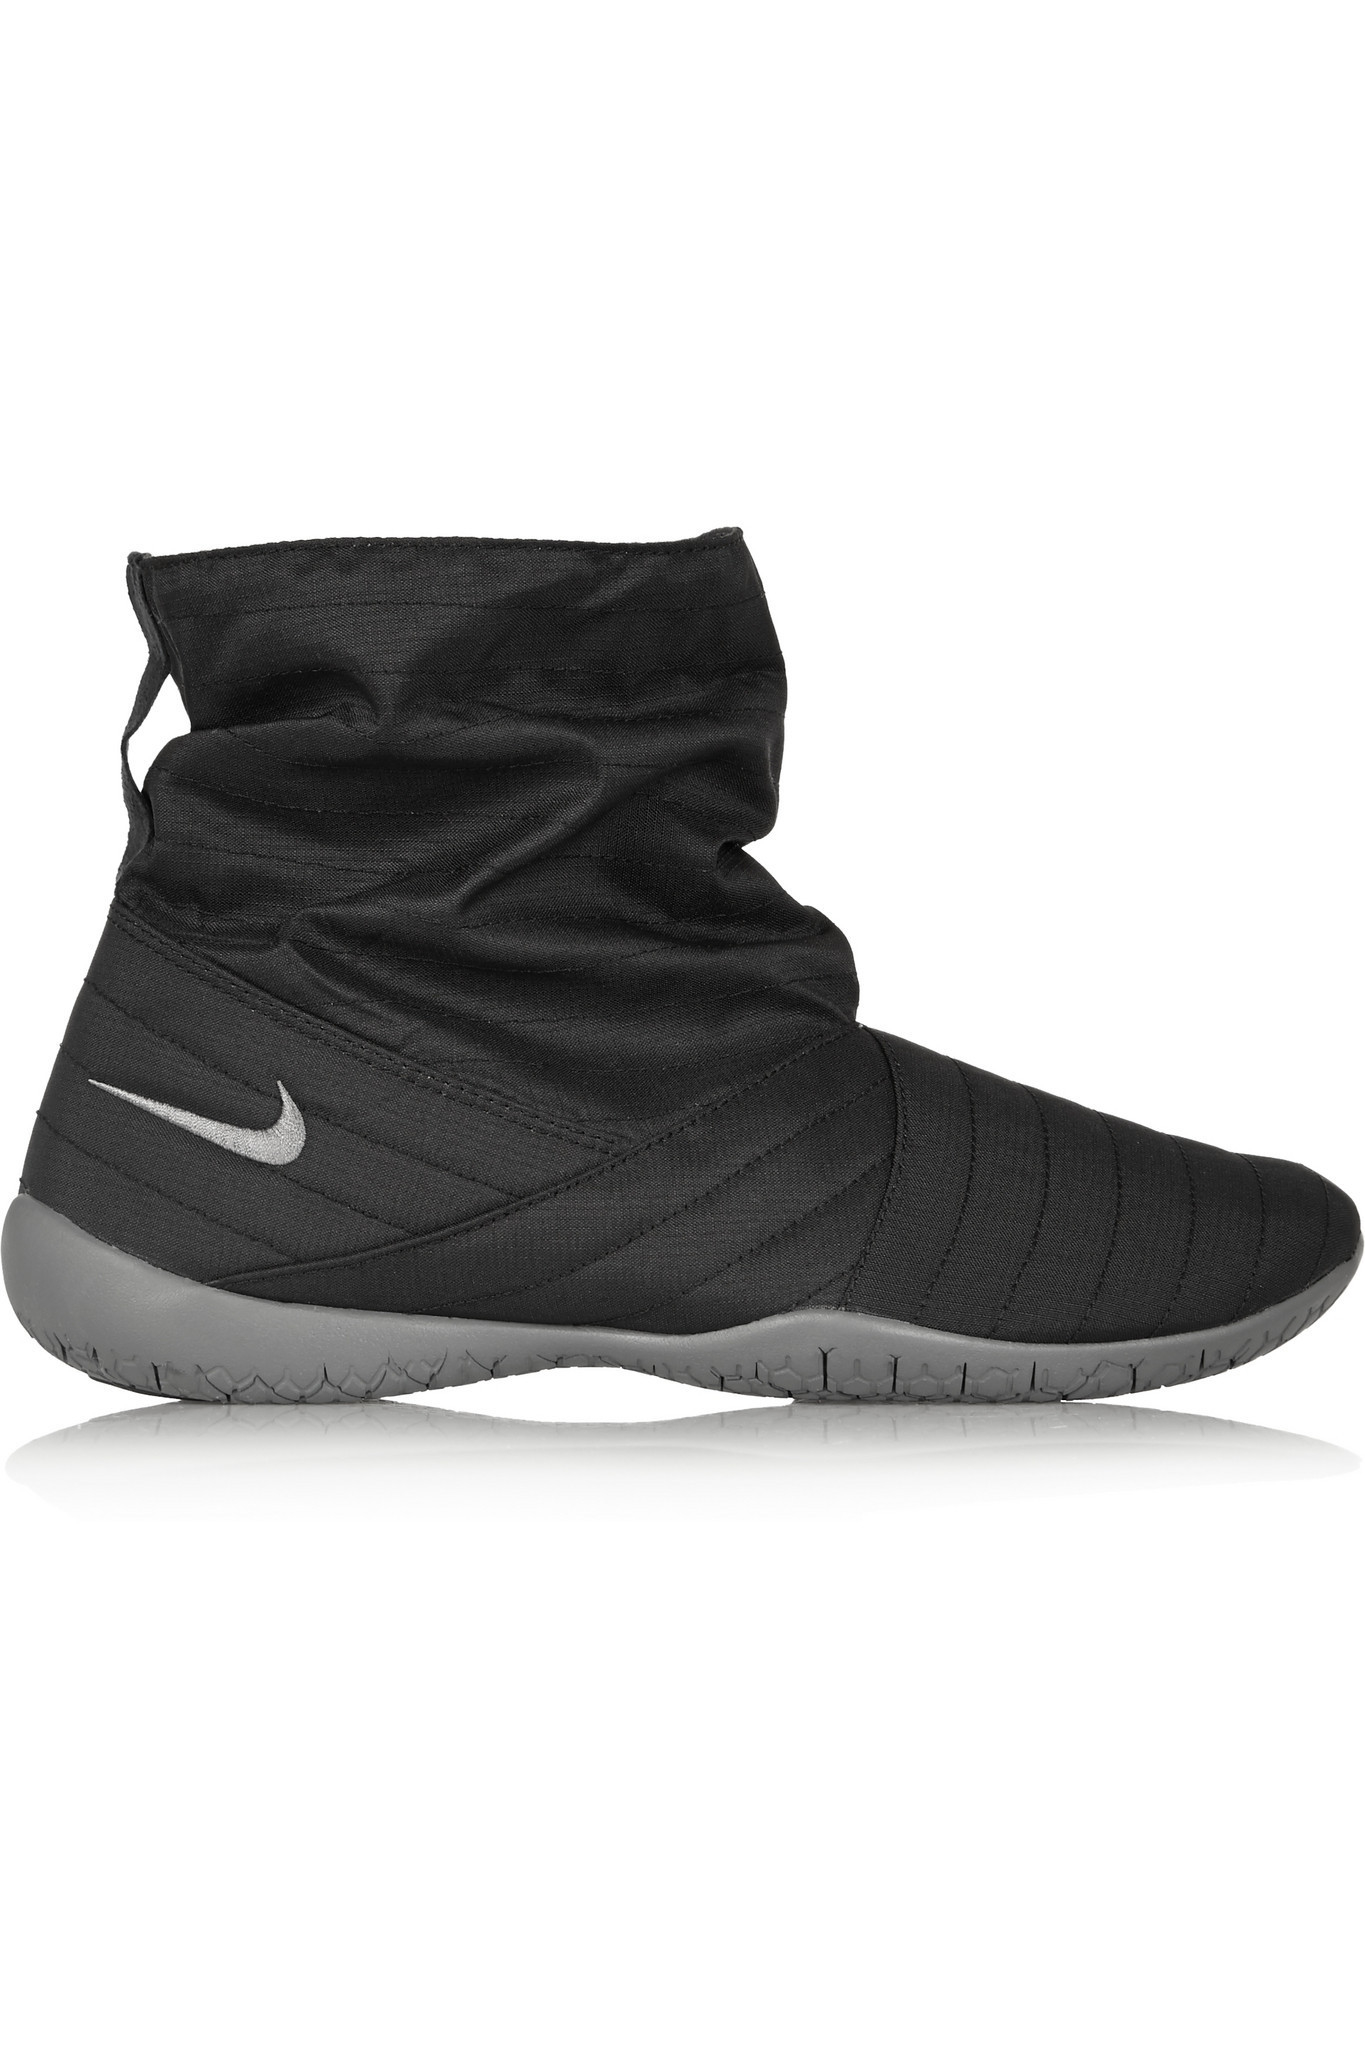 Nike Studio Mid Pack Yoga Shoe And Outdoor Boot In Black